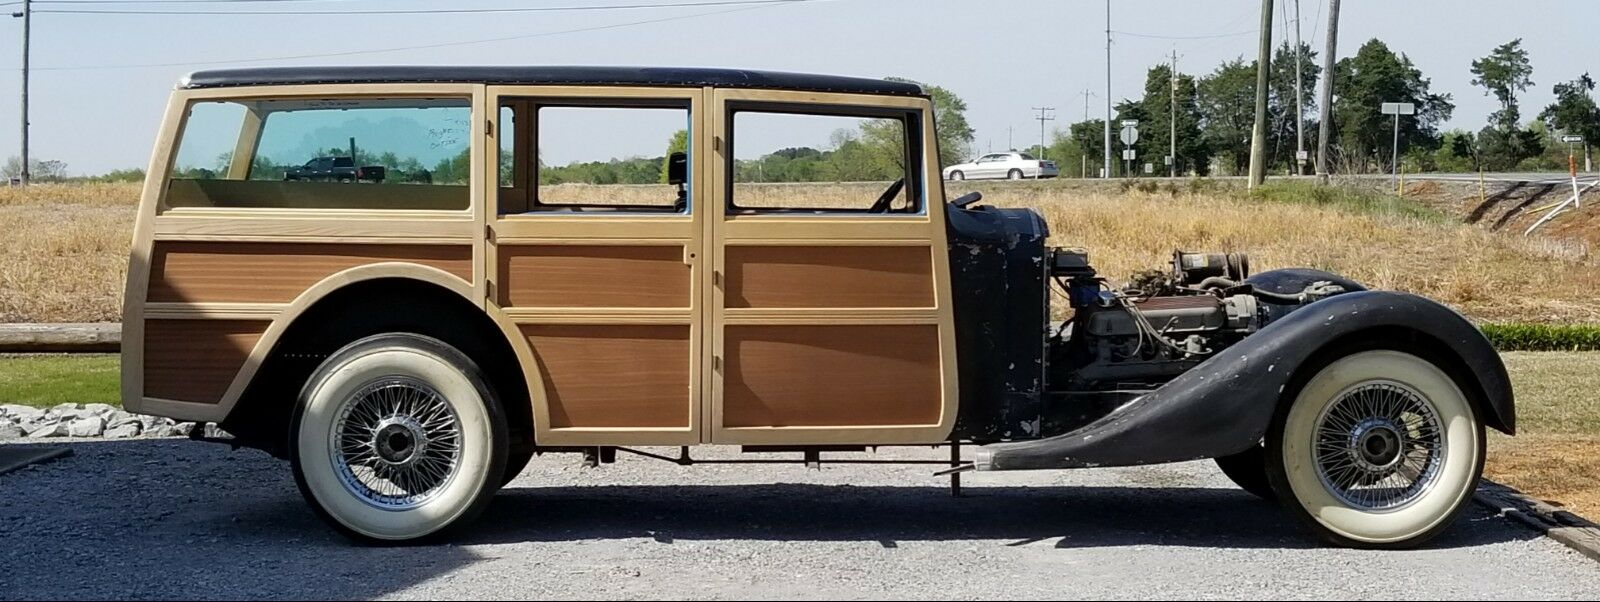 1935 Rolls-Royce Phantom II  1935 Rolls-Royce Phantom II Woodie Wagon Project - One Of A Kind!